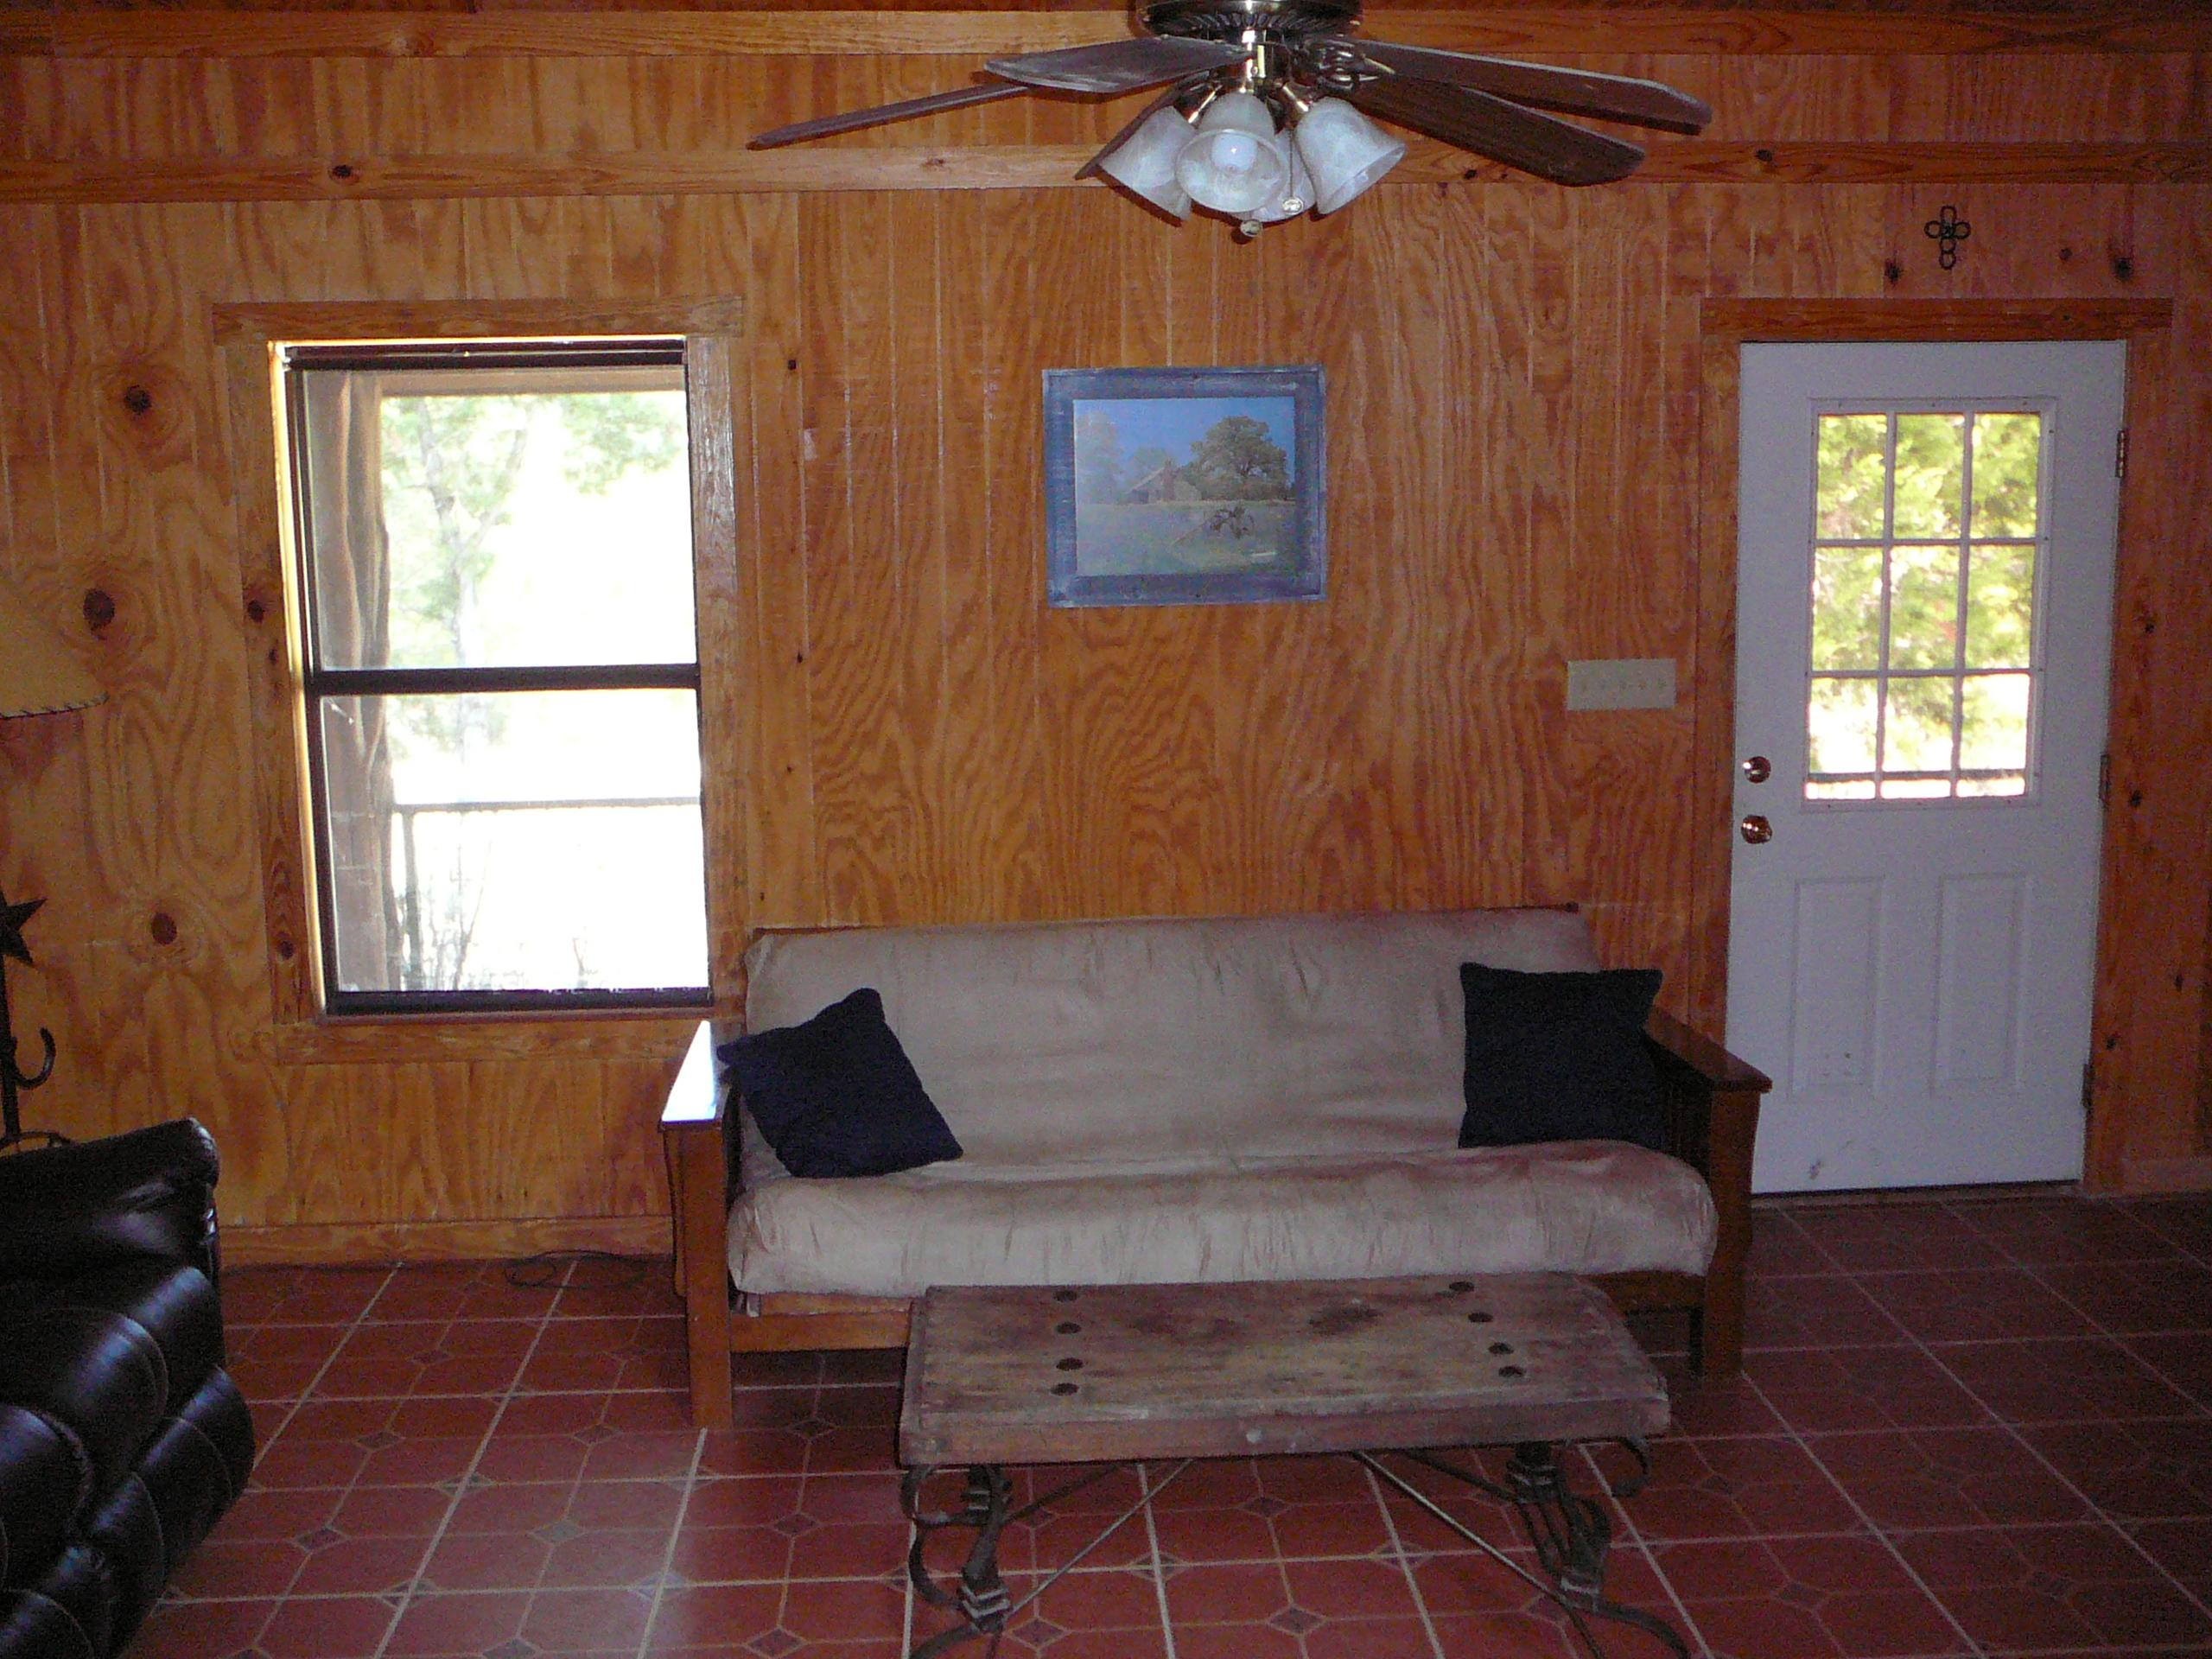 river cabins frio favorite for pinterest pin spaces leakey texas rent places